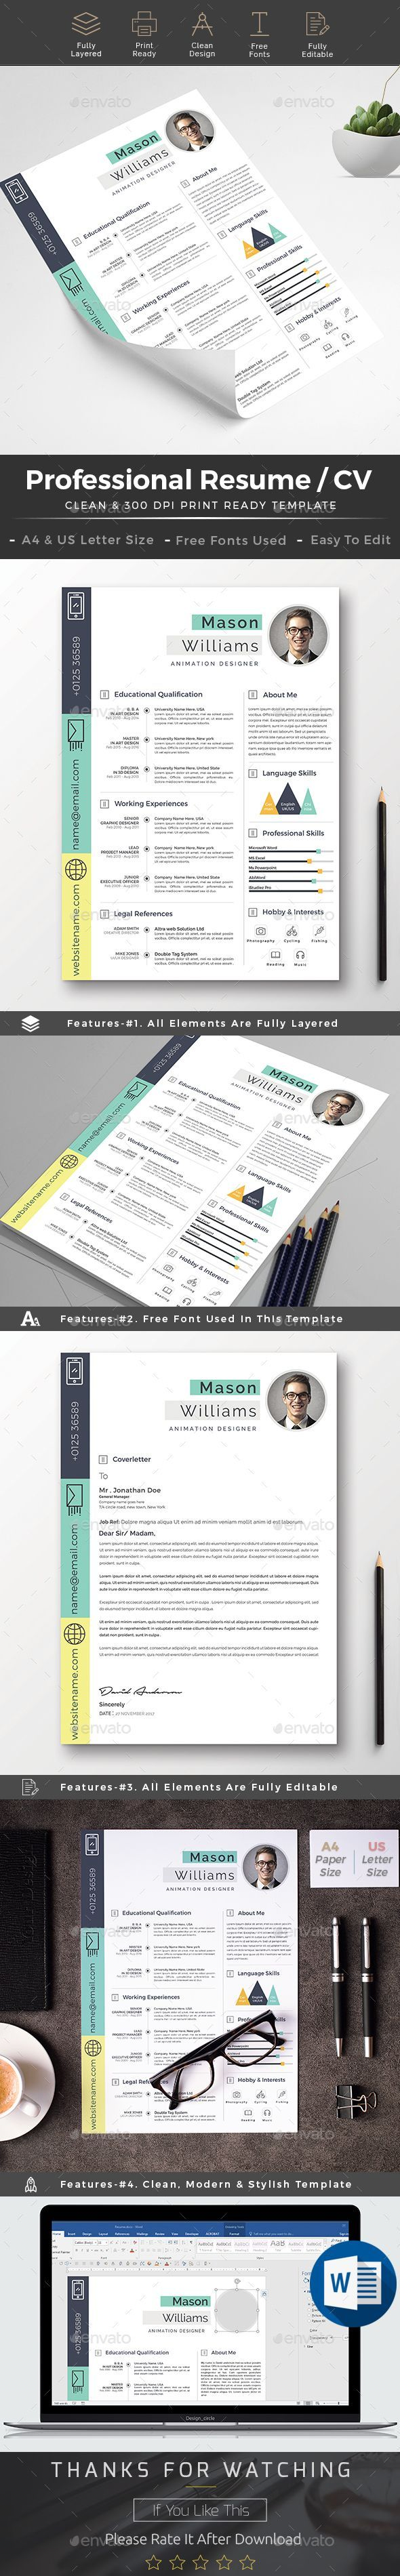 Resume Download Free Template%0A Resume cv word